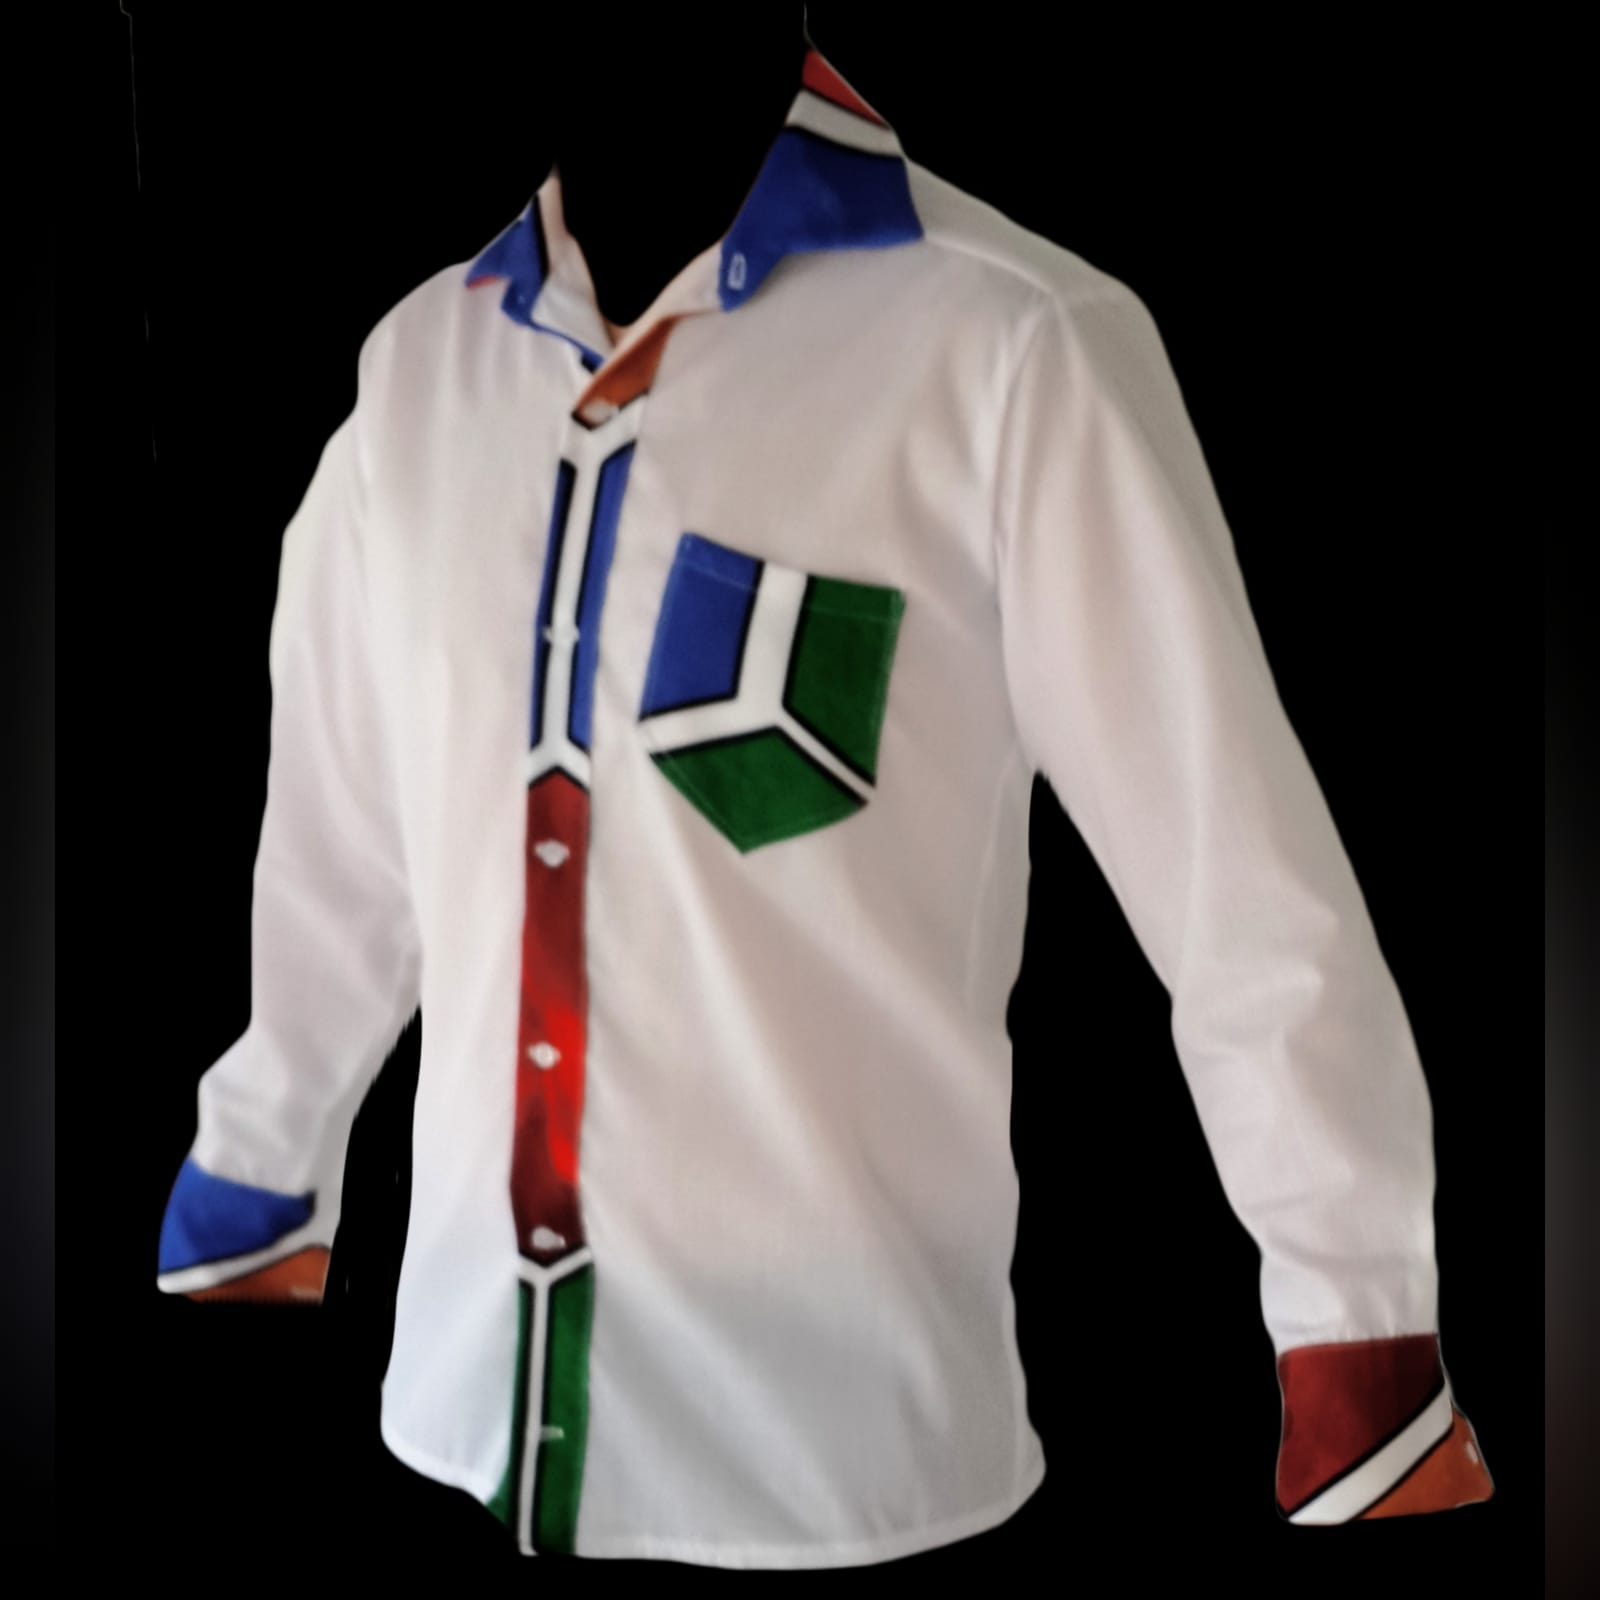 Ndebele empire fit dress with matching shirt 6 custom printed ndebele empire fit, long dress with a white under bust belt with men's matching shirt.